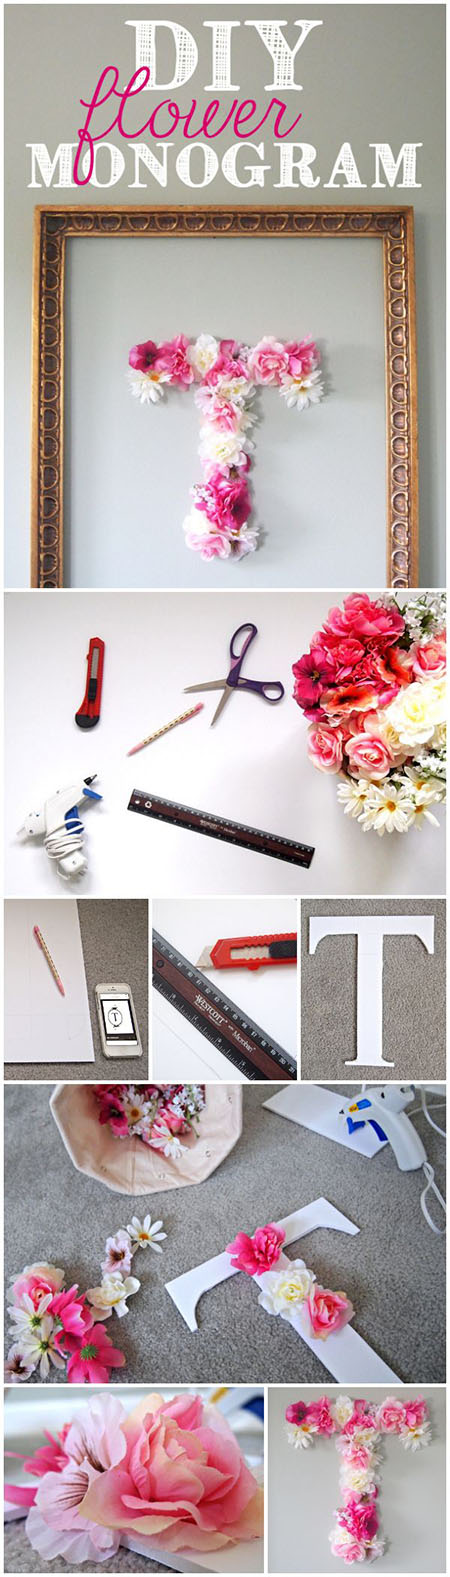 11 DIY Faux Flower Monogramd7a436